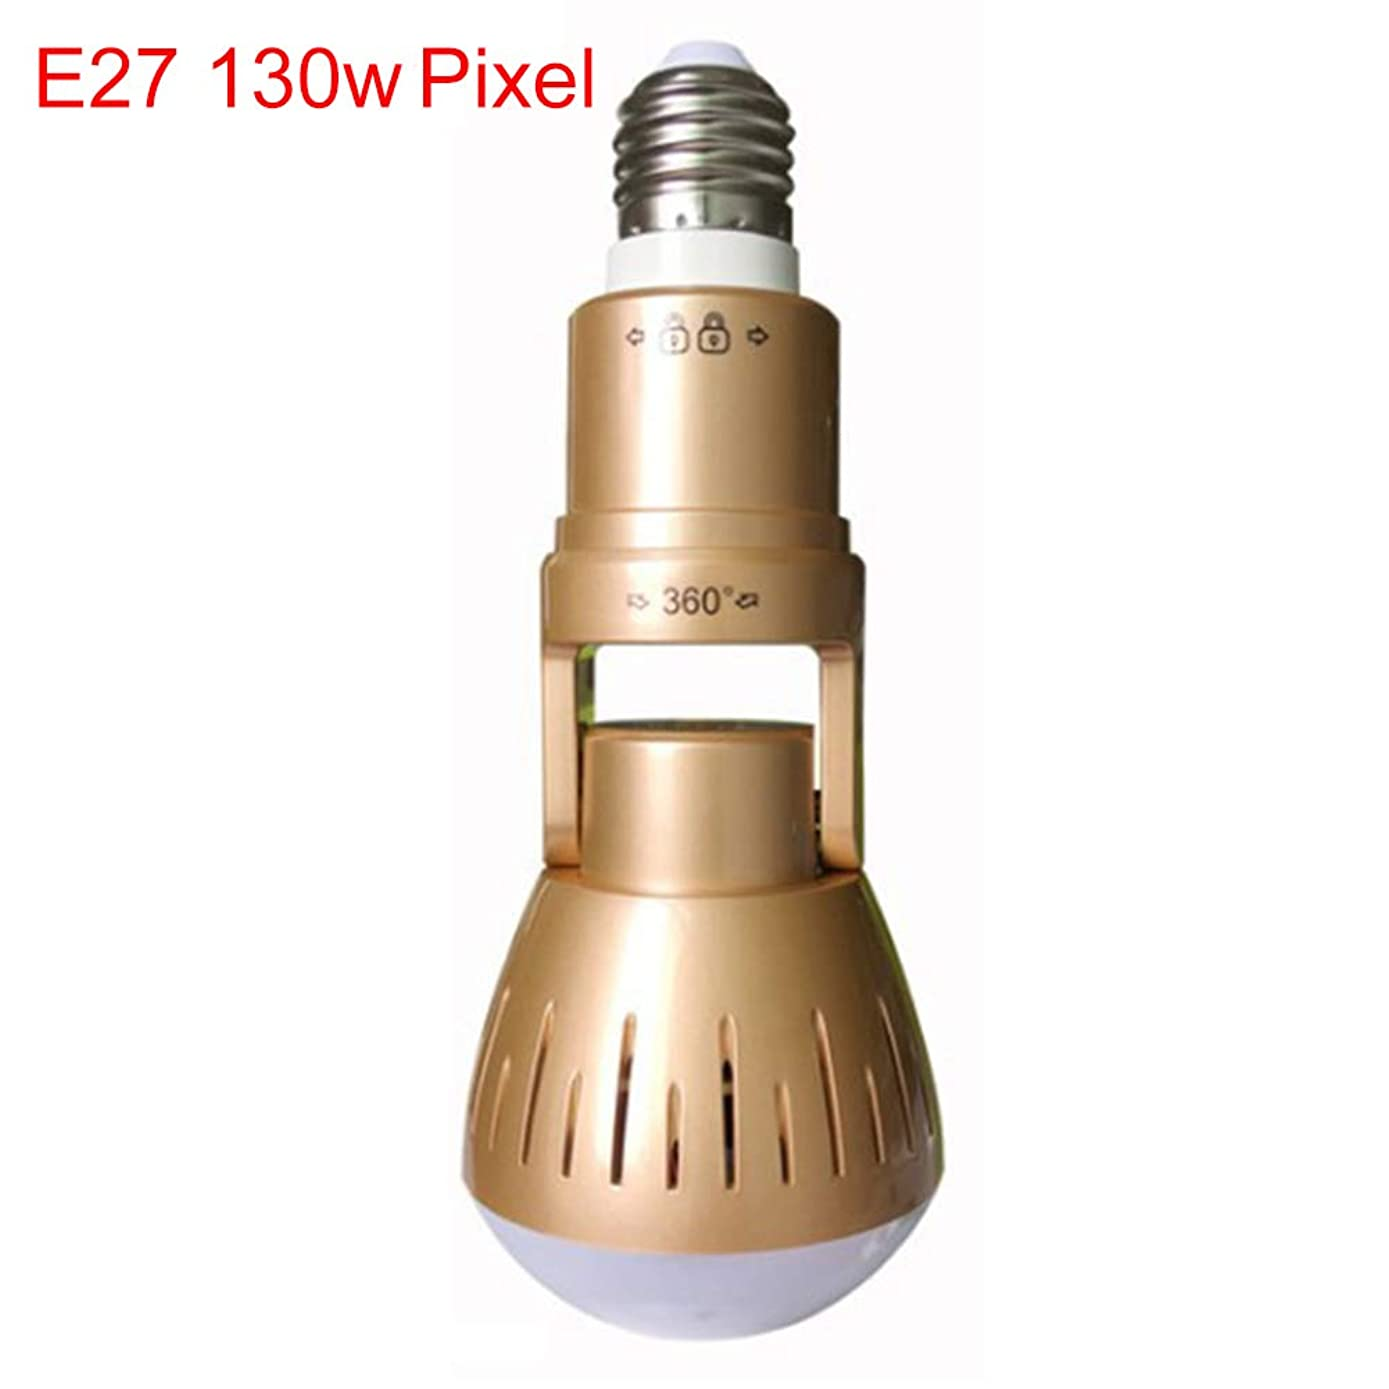 Surveillance-360 Degree E27 Phone Remote Control Smart Light Bulb WiFi Security Surveillance-HD IP Camera - Golden 130w